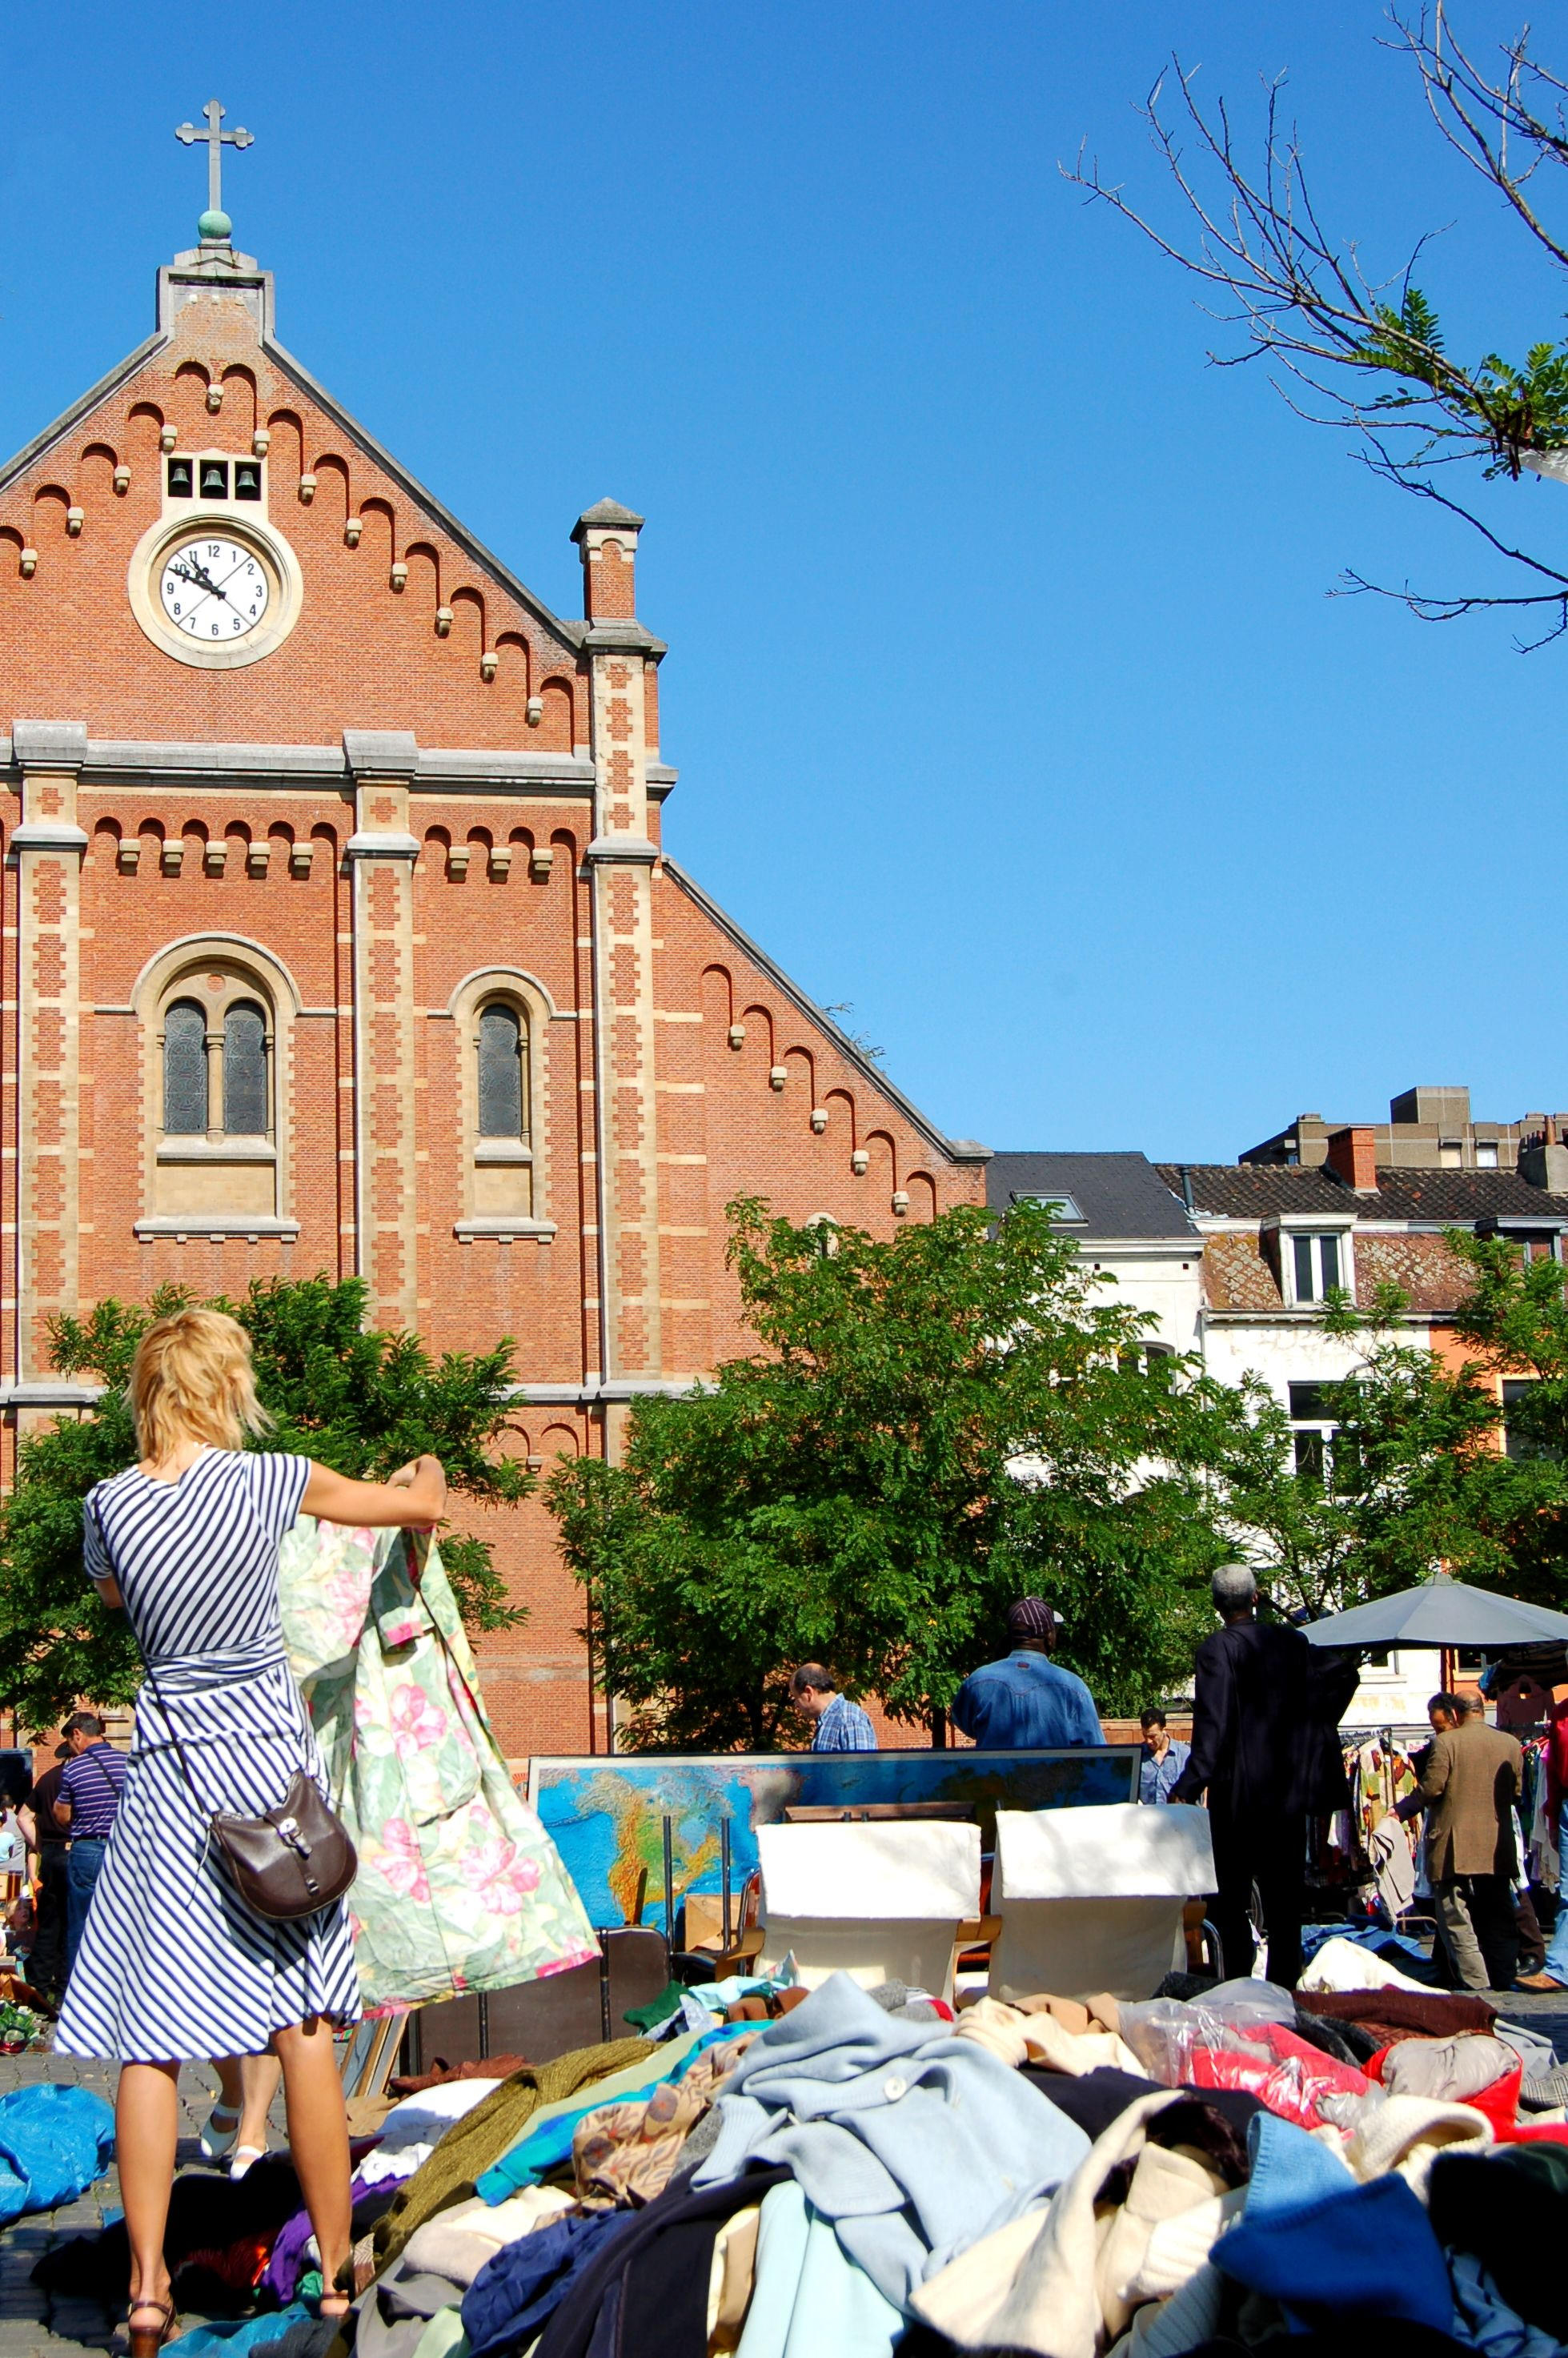 Vossenplein, the best place to go vintage shopping